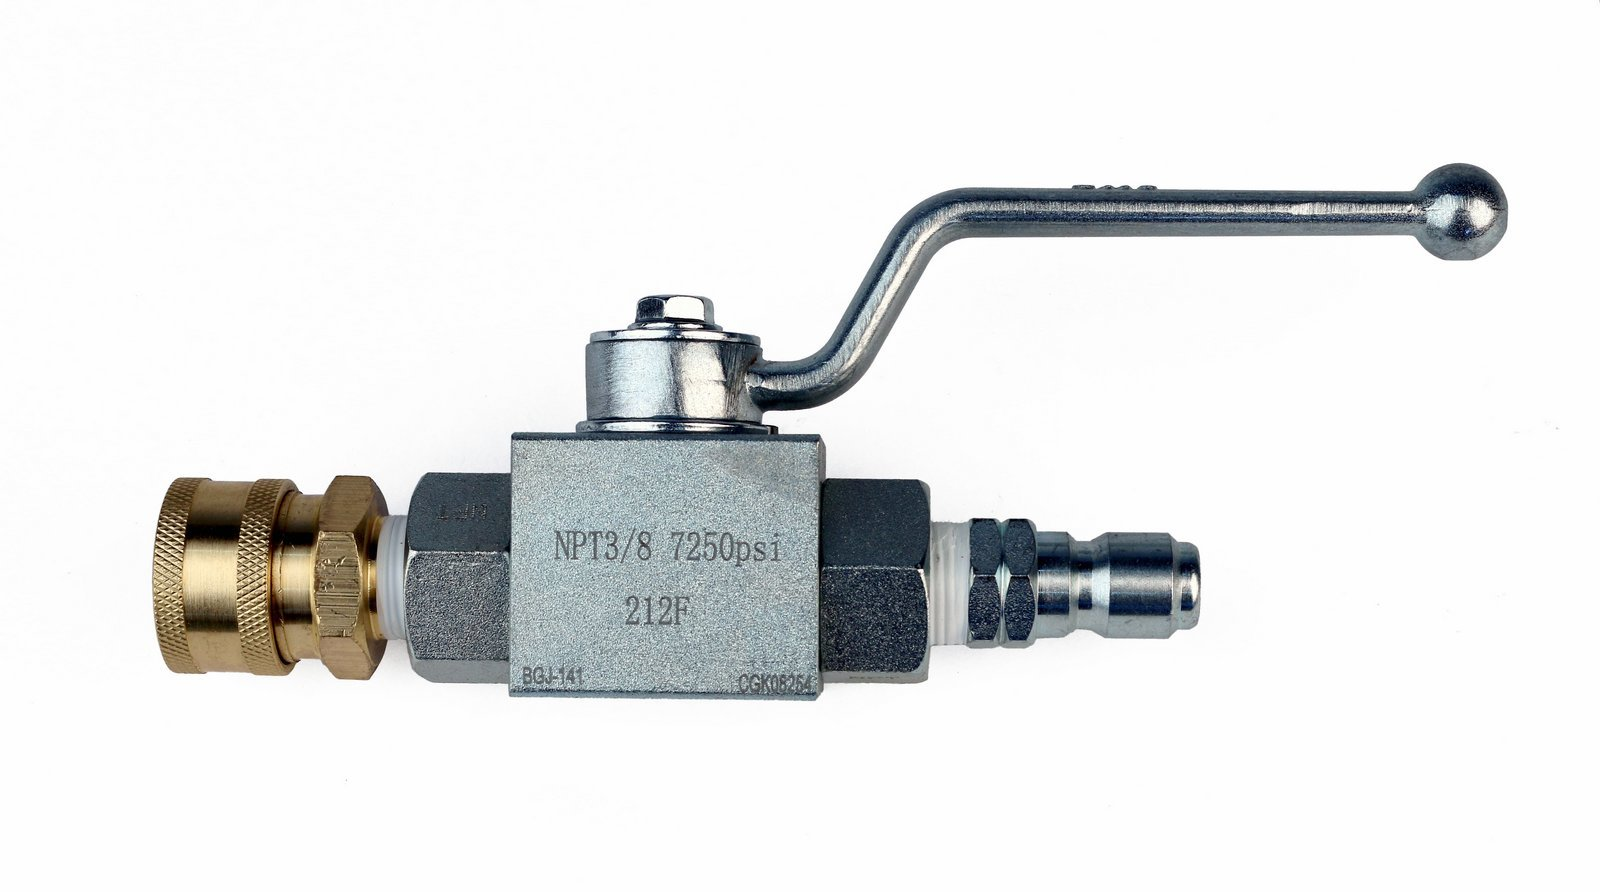 High Pressure Ball Valve Kit 3/8'' Male Plug X 3/8'' Female Quick Connect 4000PSI for High Pressure Hoses by Raptor Blast (Image #3)